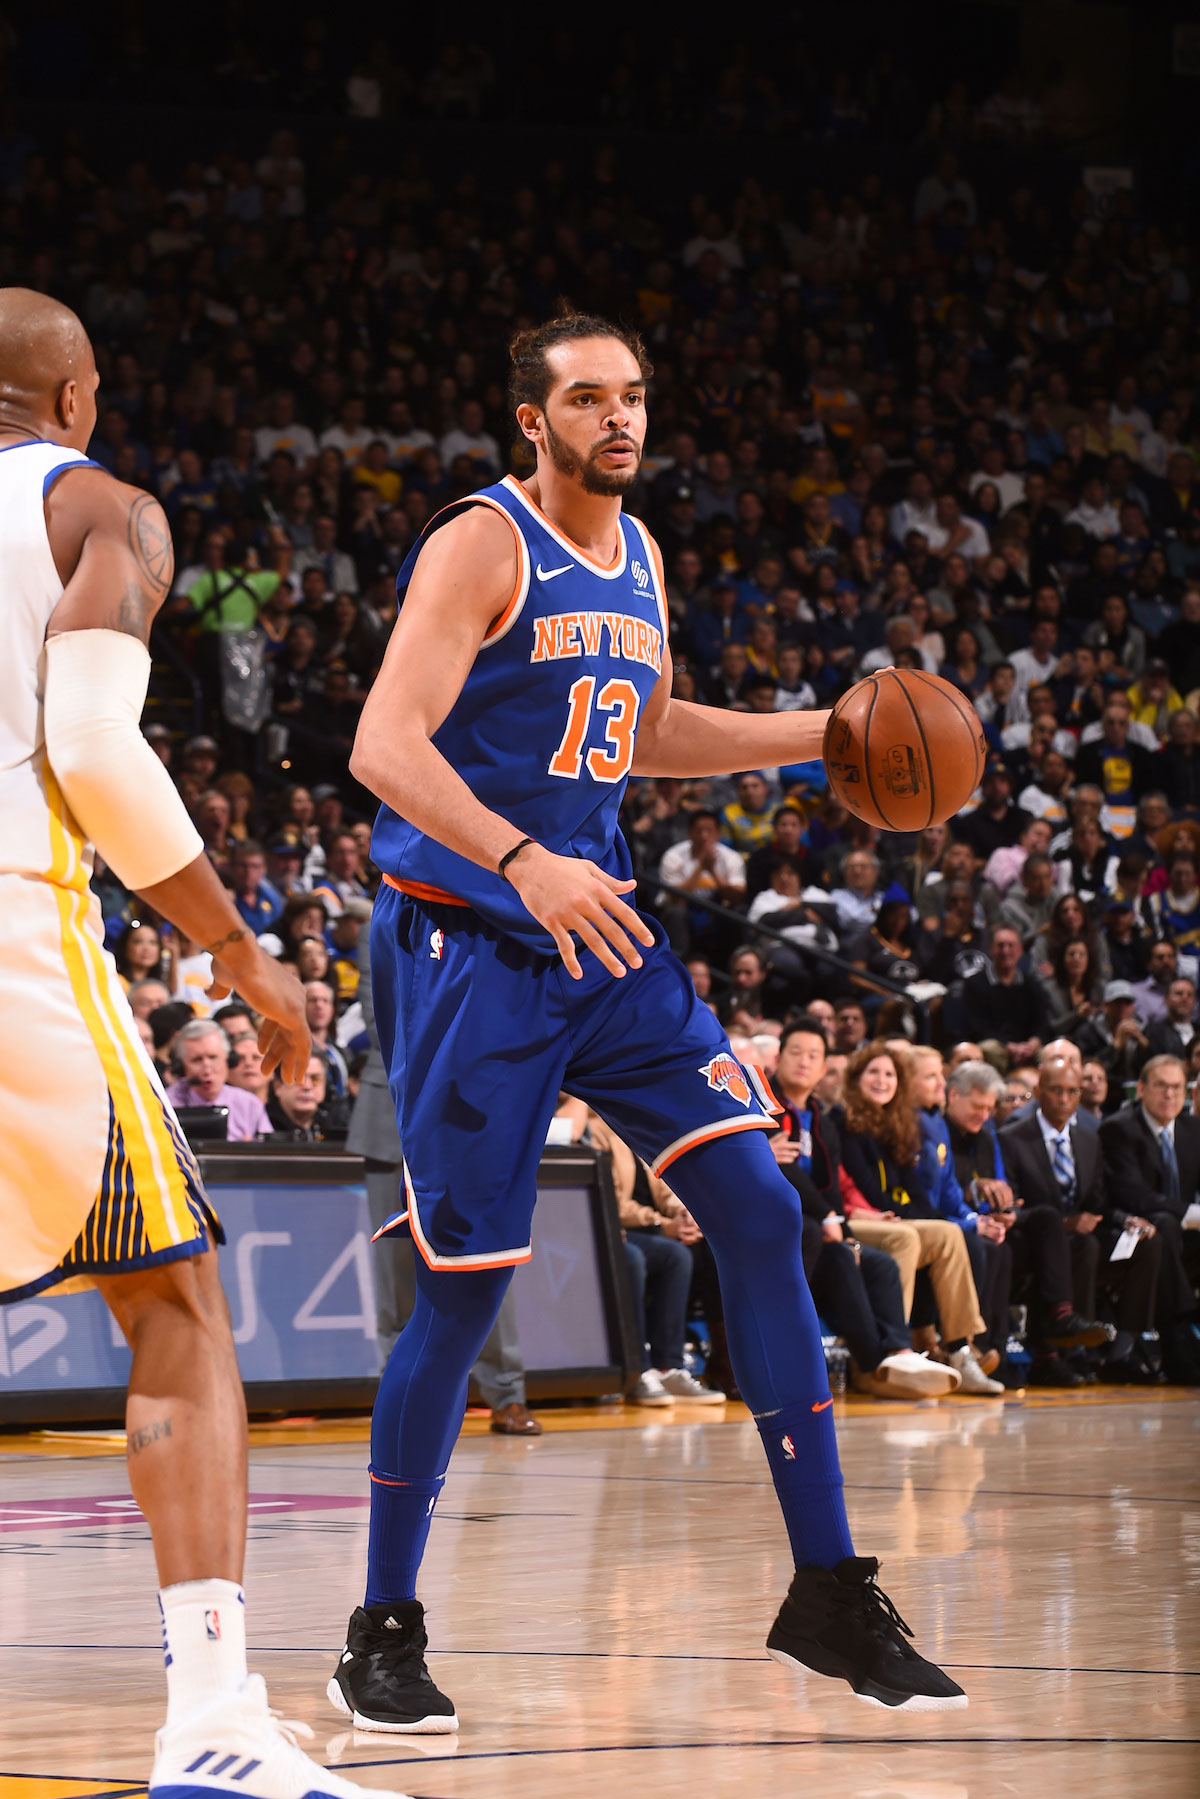 Joakim Noah #13 of the New York Knicks handles the ball against the Golden State Warriors on January 23, 2018 at ORACLE Arena in Oakland, California.